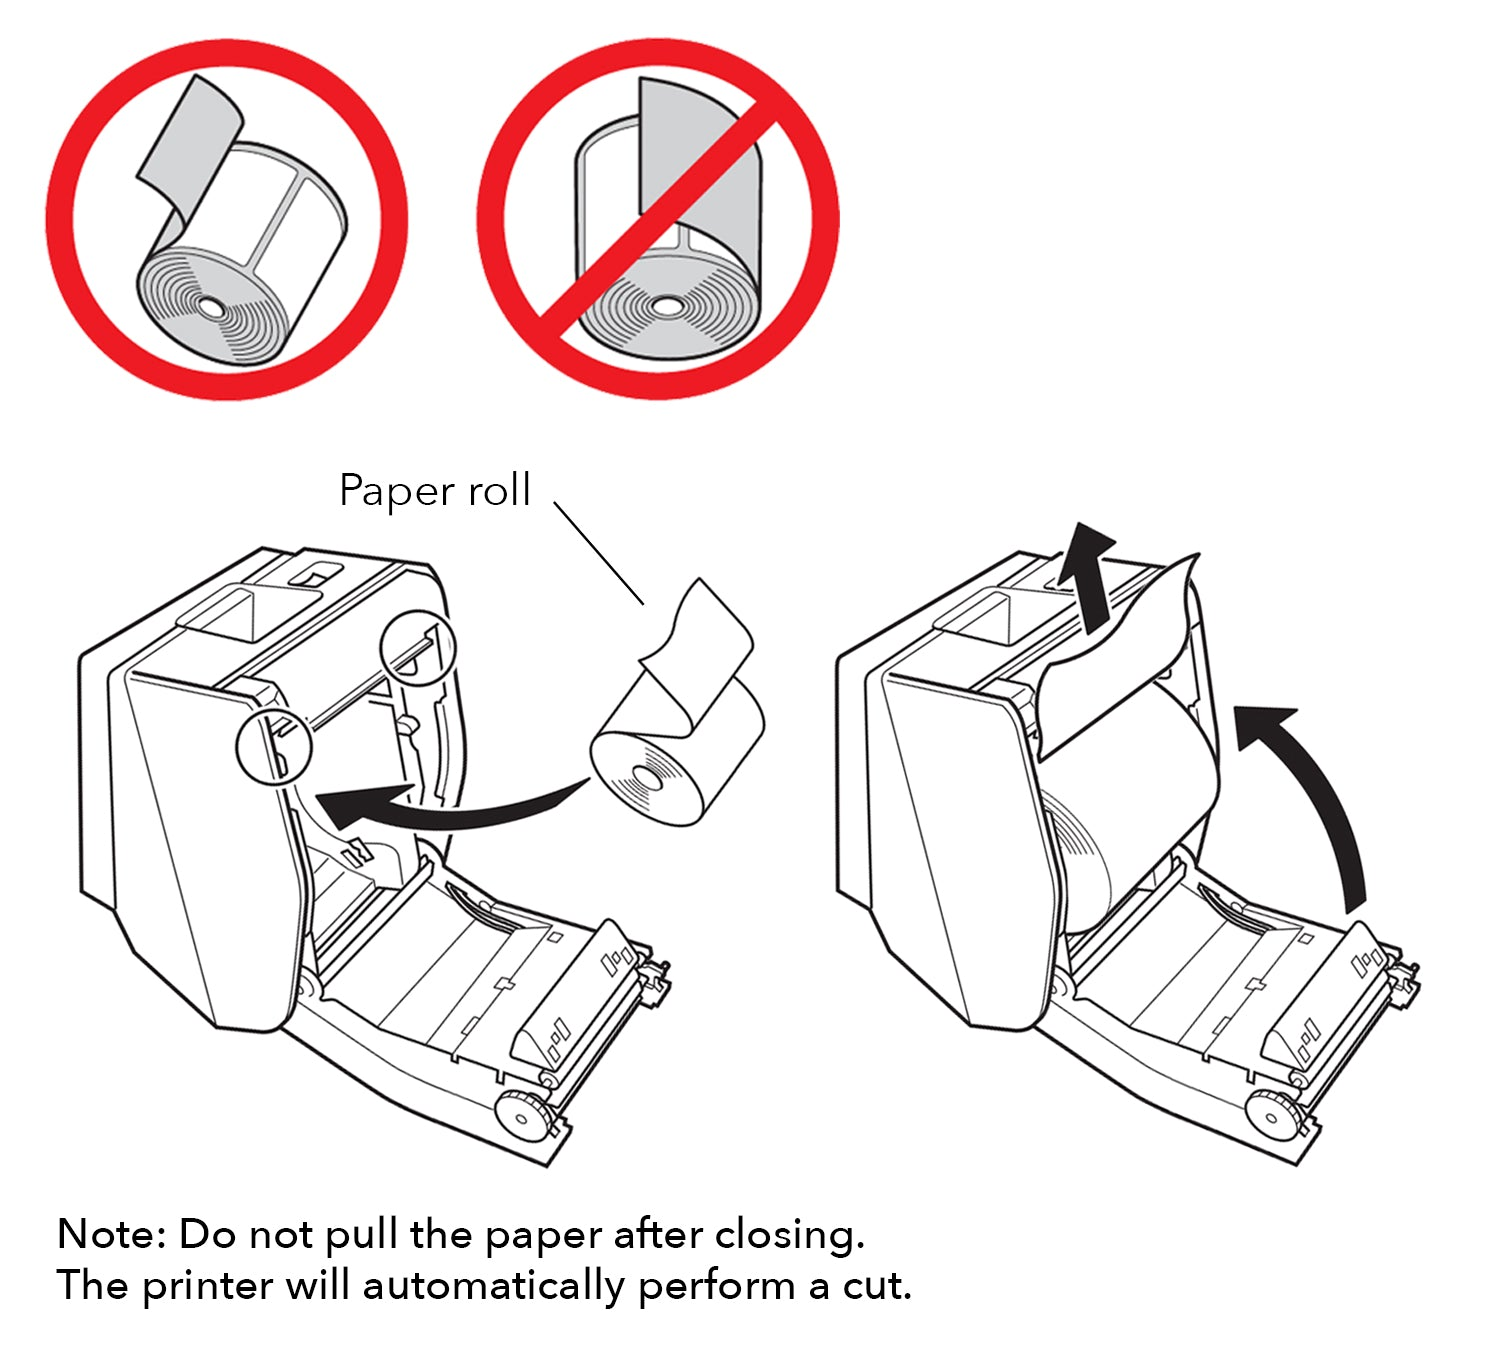 Diagram showing how to load paper roll into Star Printer